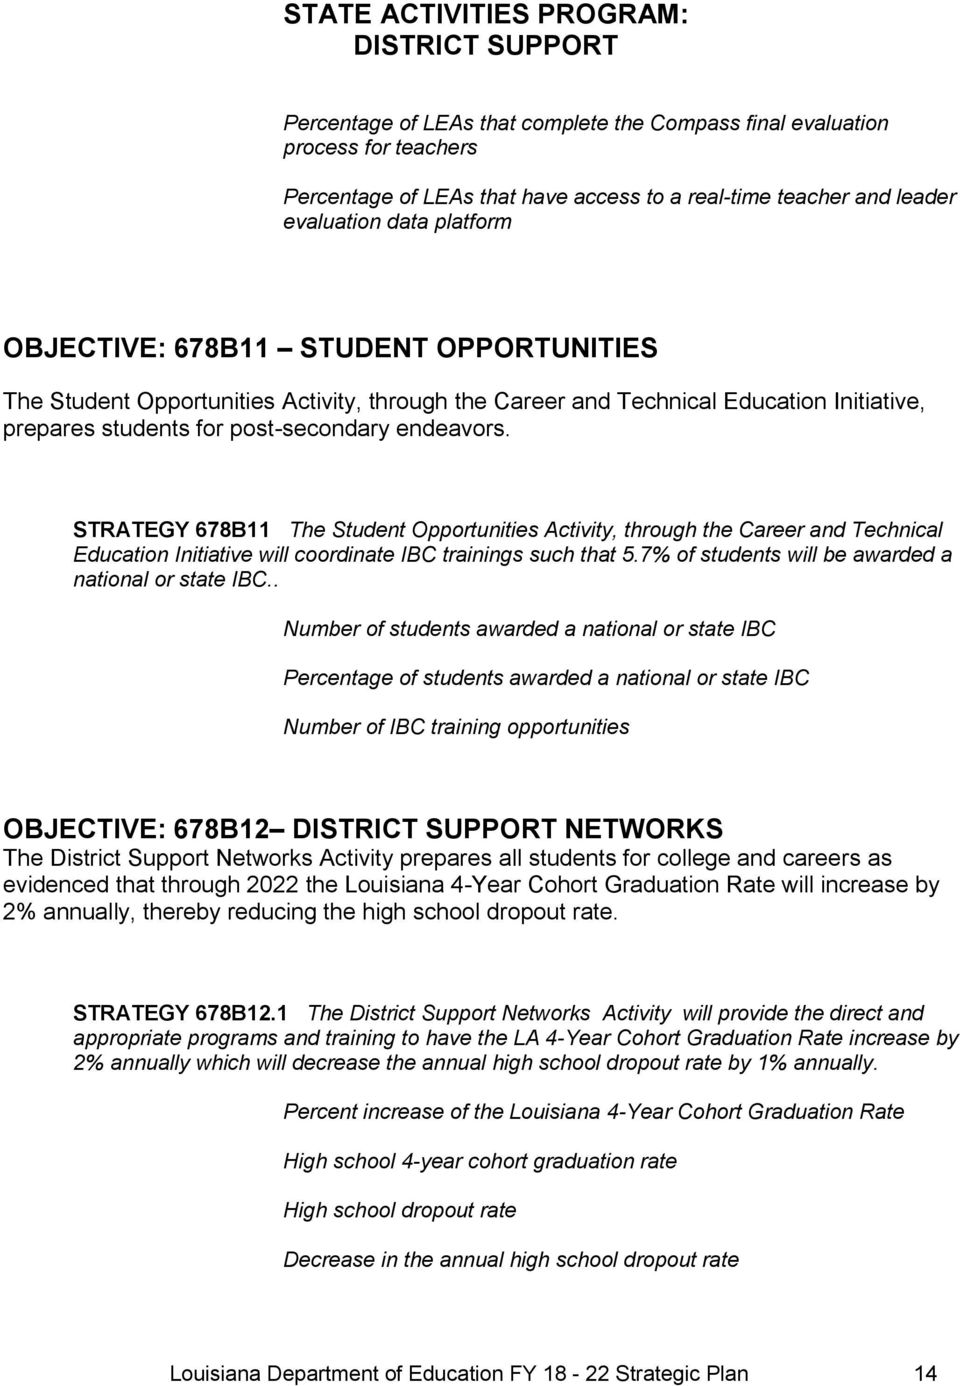 endeavors. STRATEGY 678B11 The Student Opportunities Activity, through the Career and Technical Education Initiative will coordinate IBC trainings such that 5.